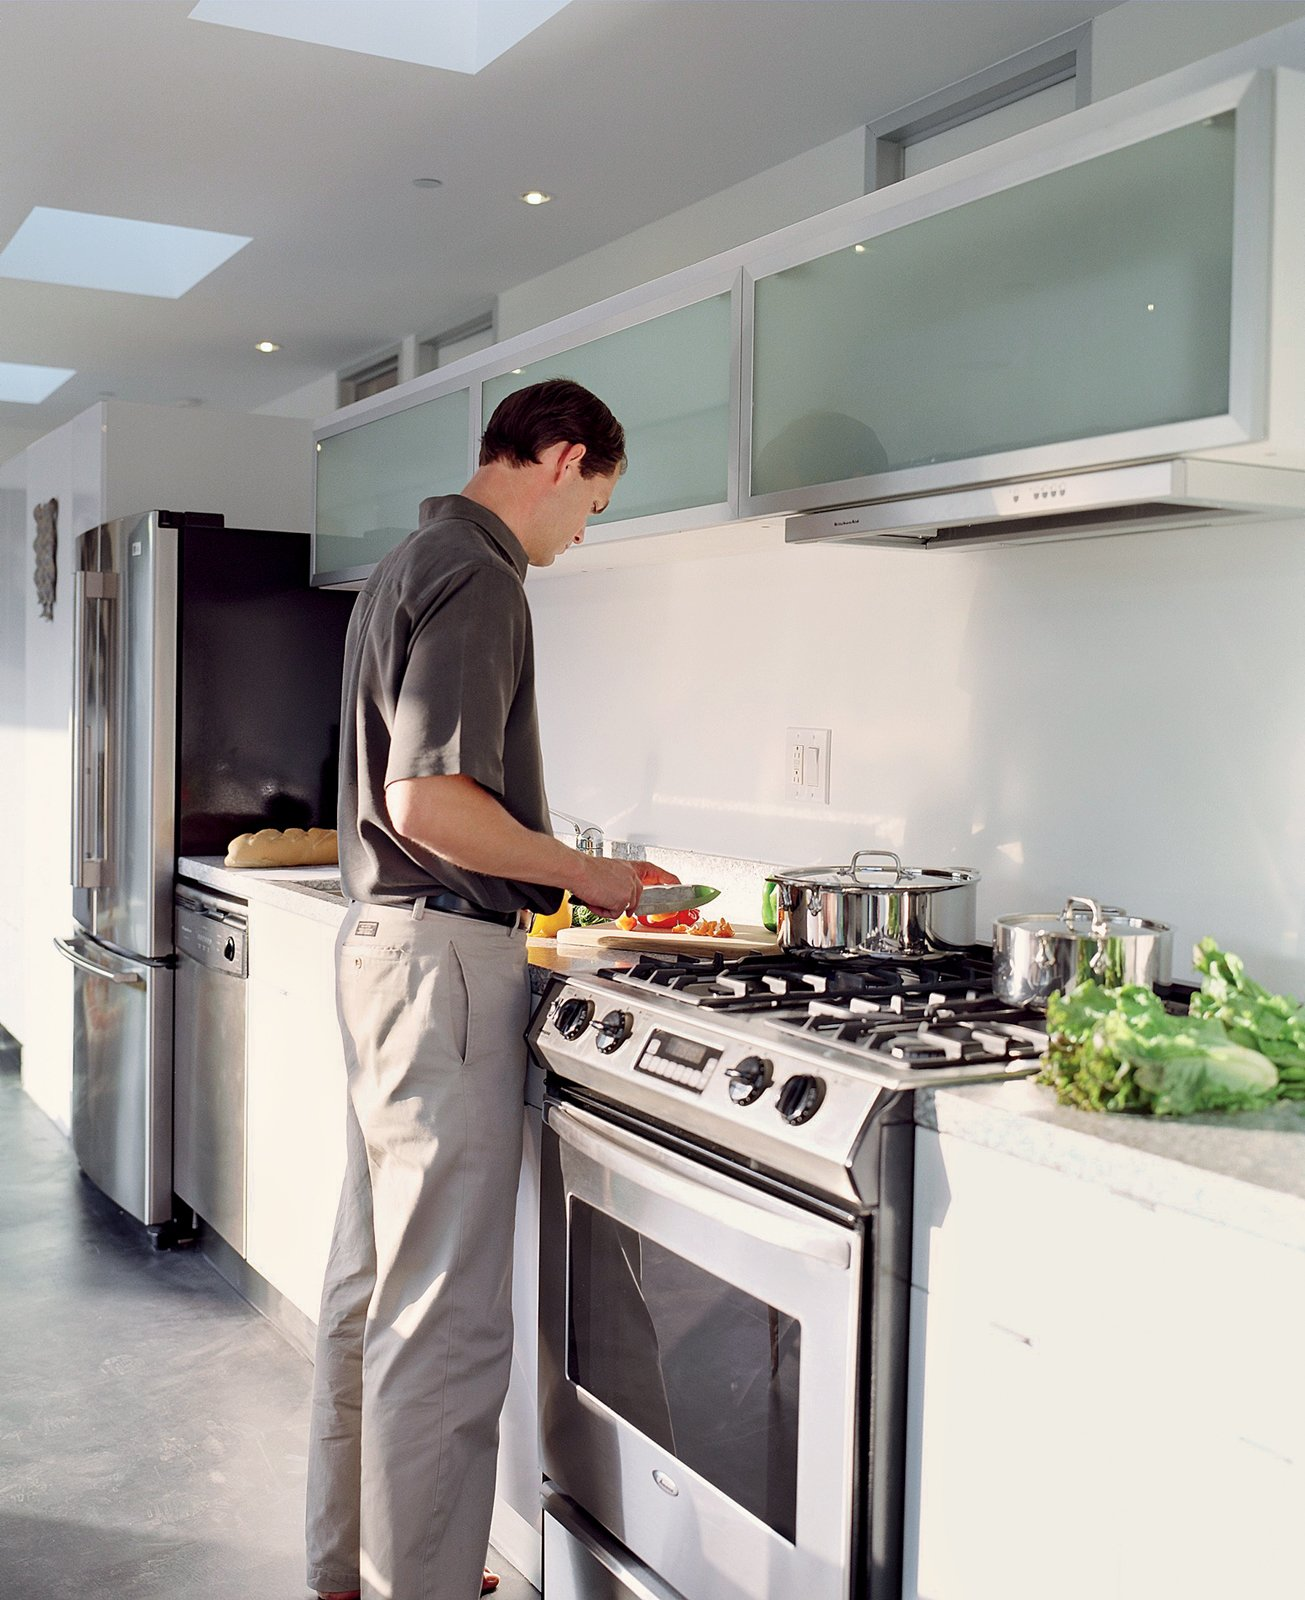 Reitz in the kitchen, which is outfitted with efficient fluorescent lighting and Energy Star appliances. Taking His Own Advice - Photo 3 of 4